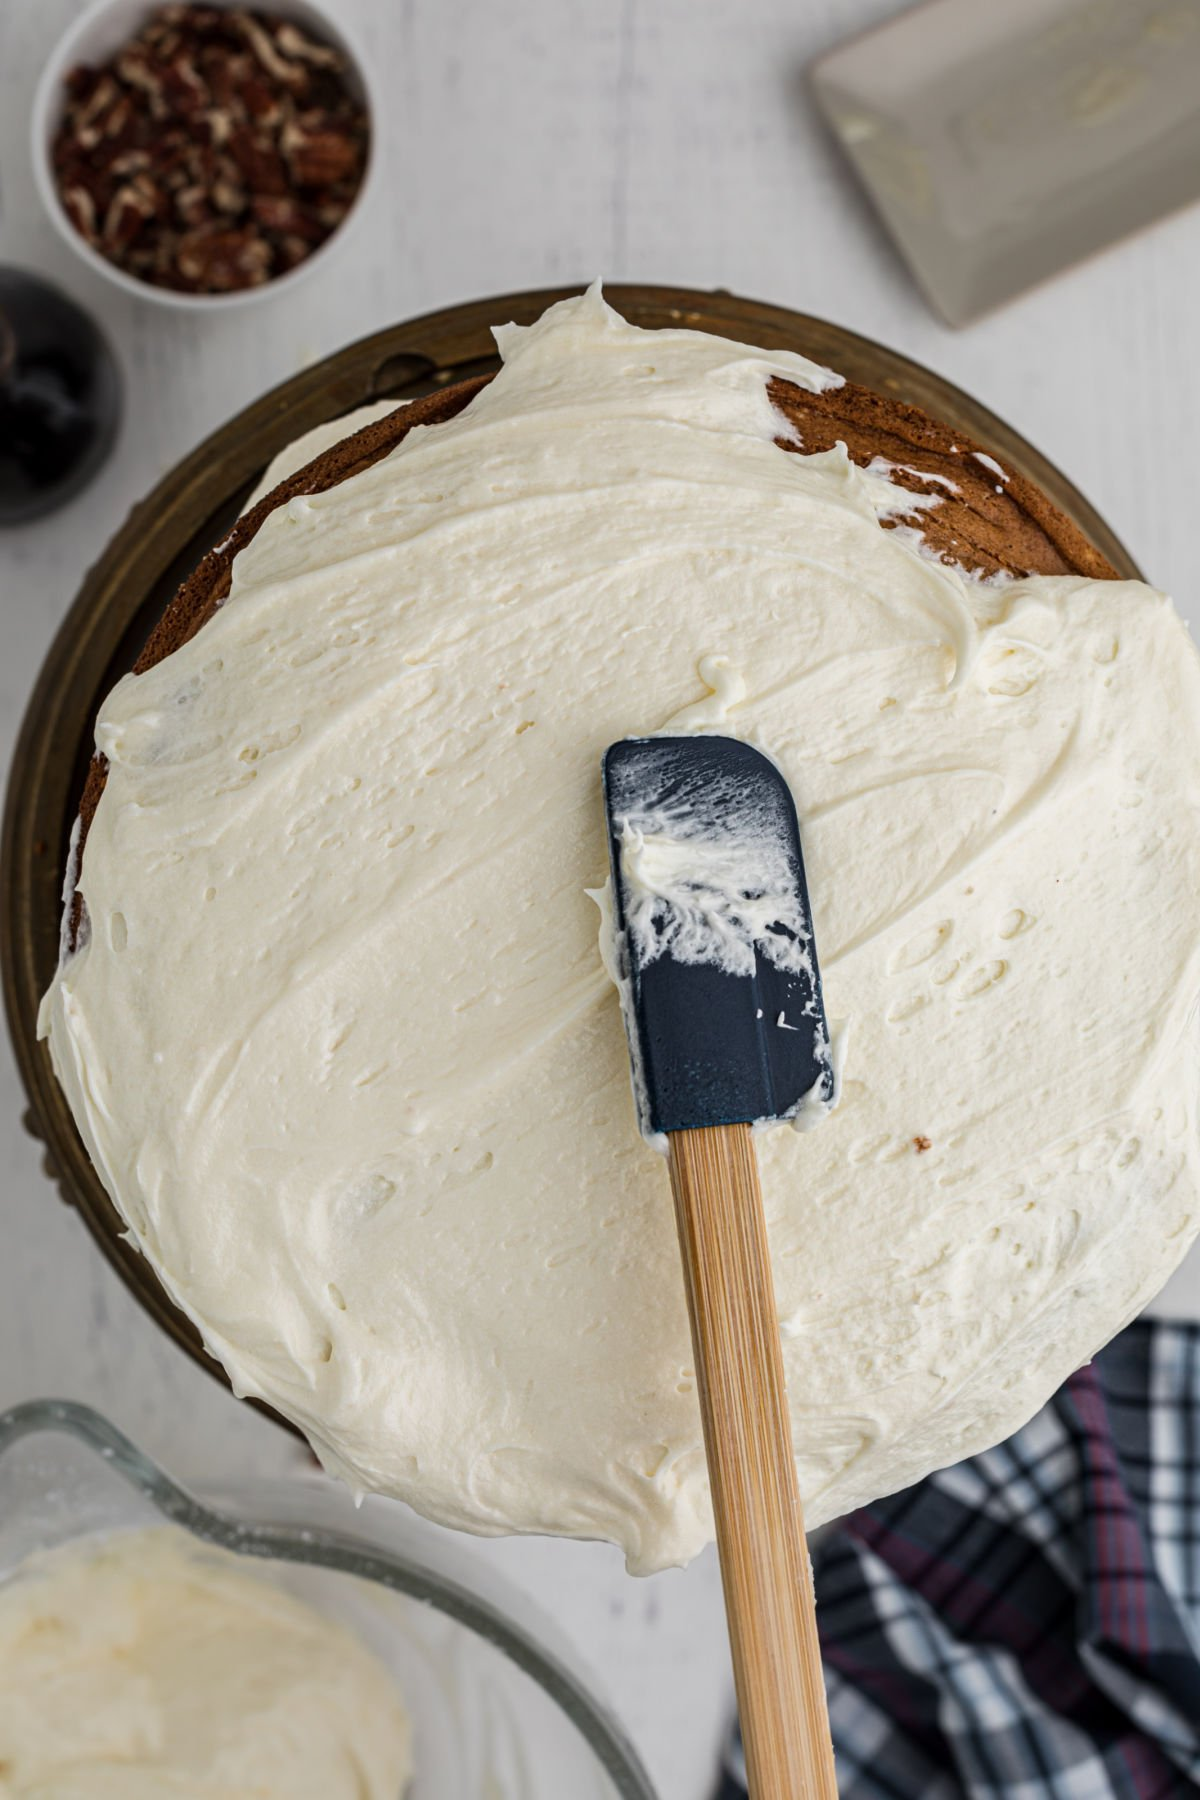 Putting frosting on the cake with a rubber spatula.